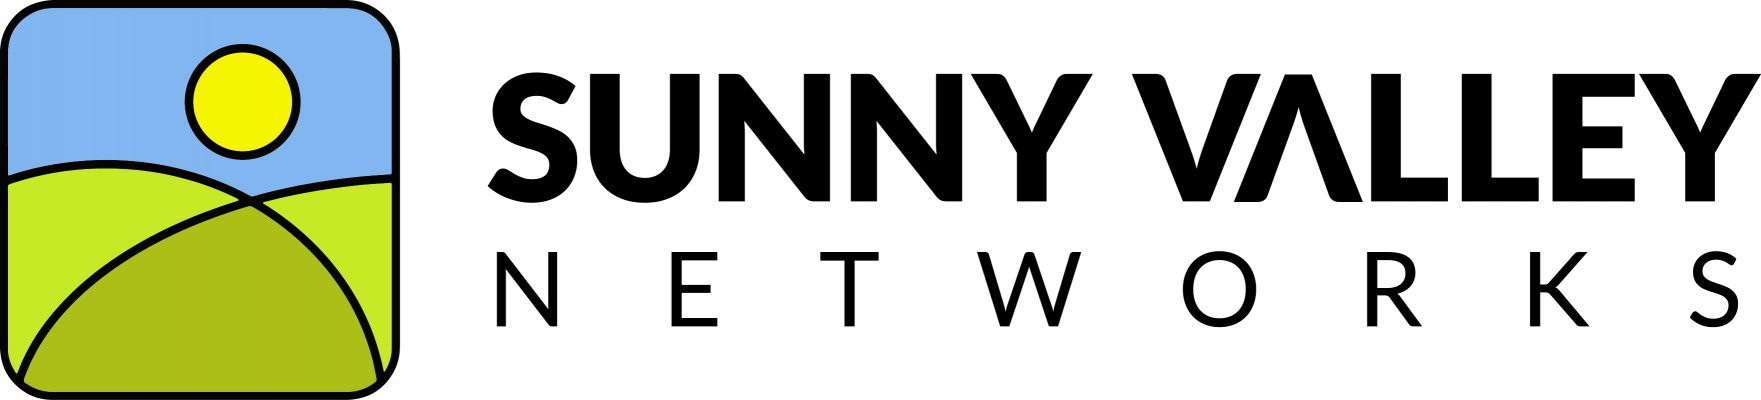 Sunny Valley Cyber Security Inc.